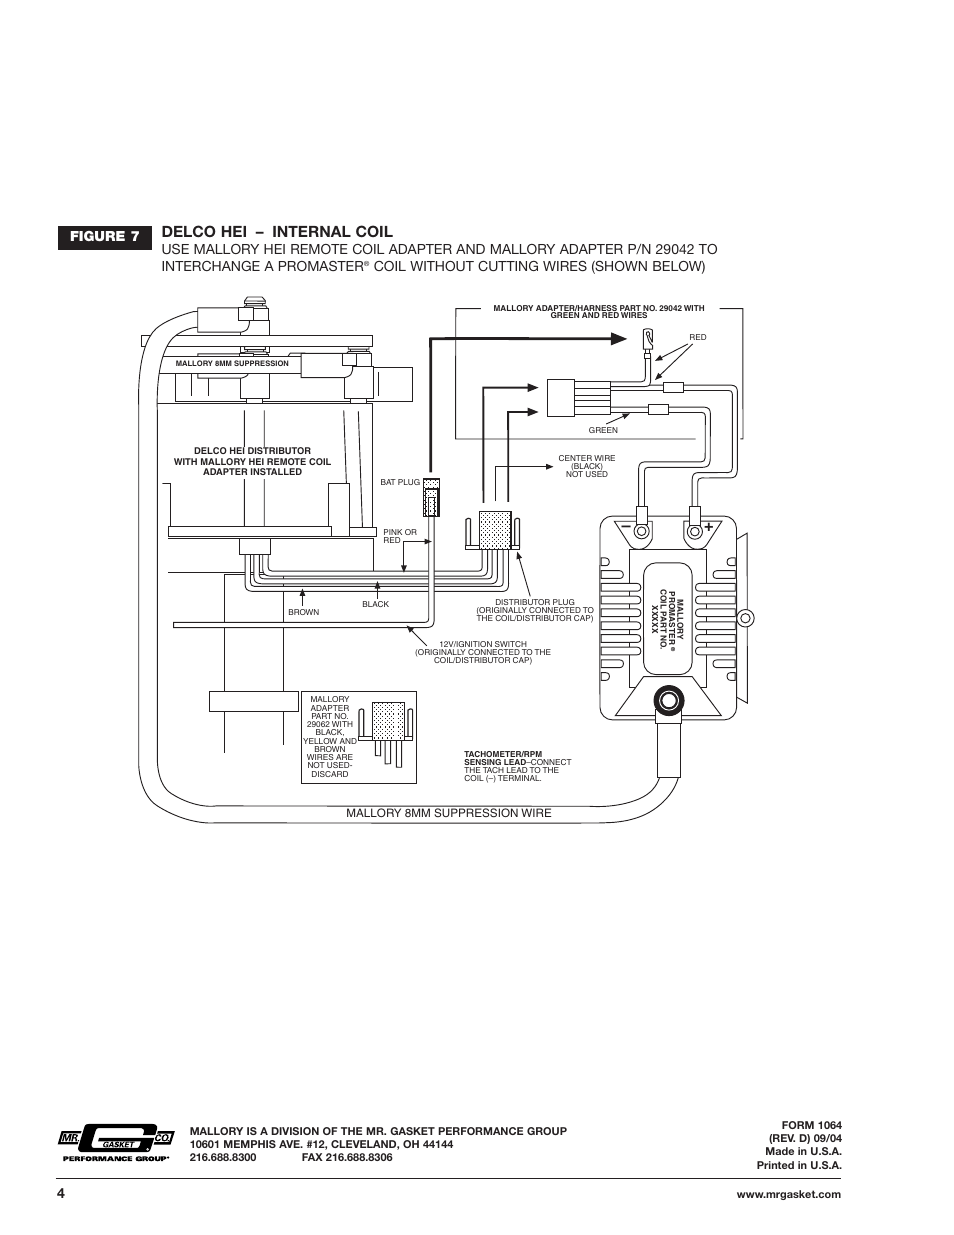 hight resolution of delco hei internal coil figure 7 coil without cutting wires shown below mallory ignition mallory promaster ignition coil 29440 29450 29625 29450